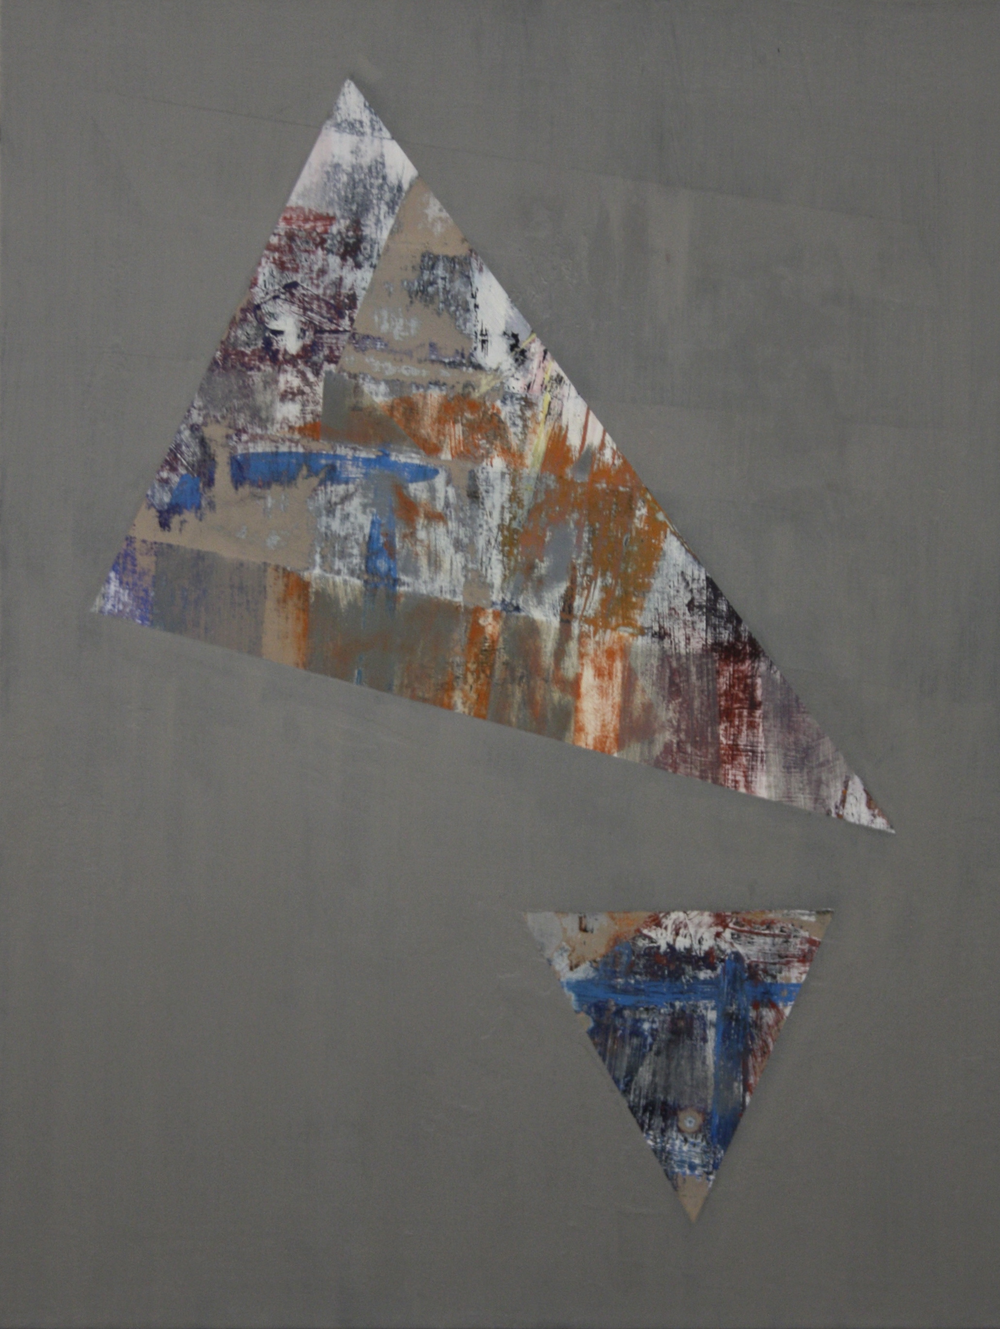 Degrees of Separation 5, 2010 - 12, oil on canvas, 56 x 43 cm